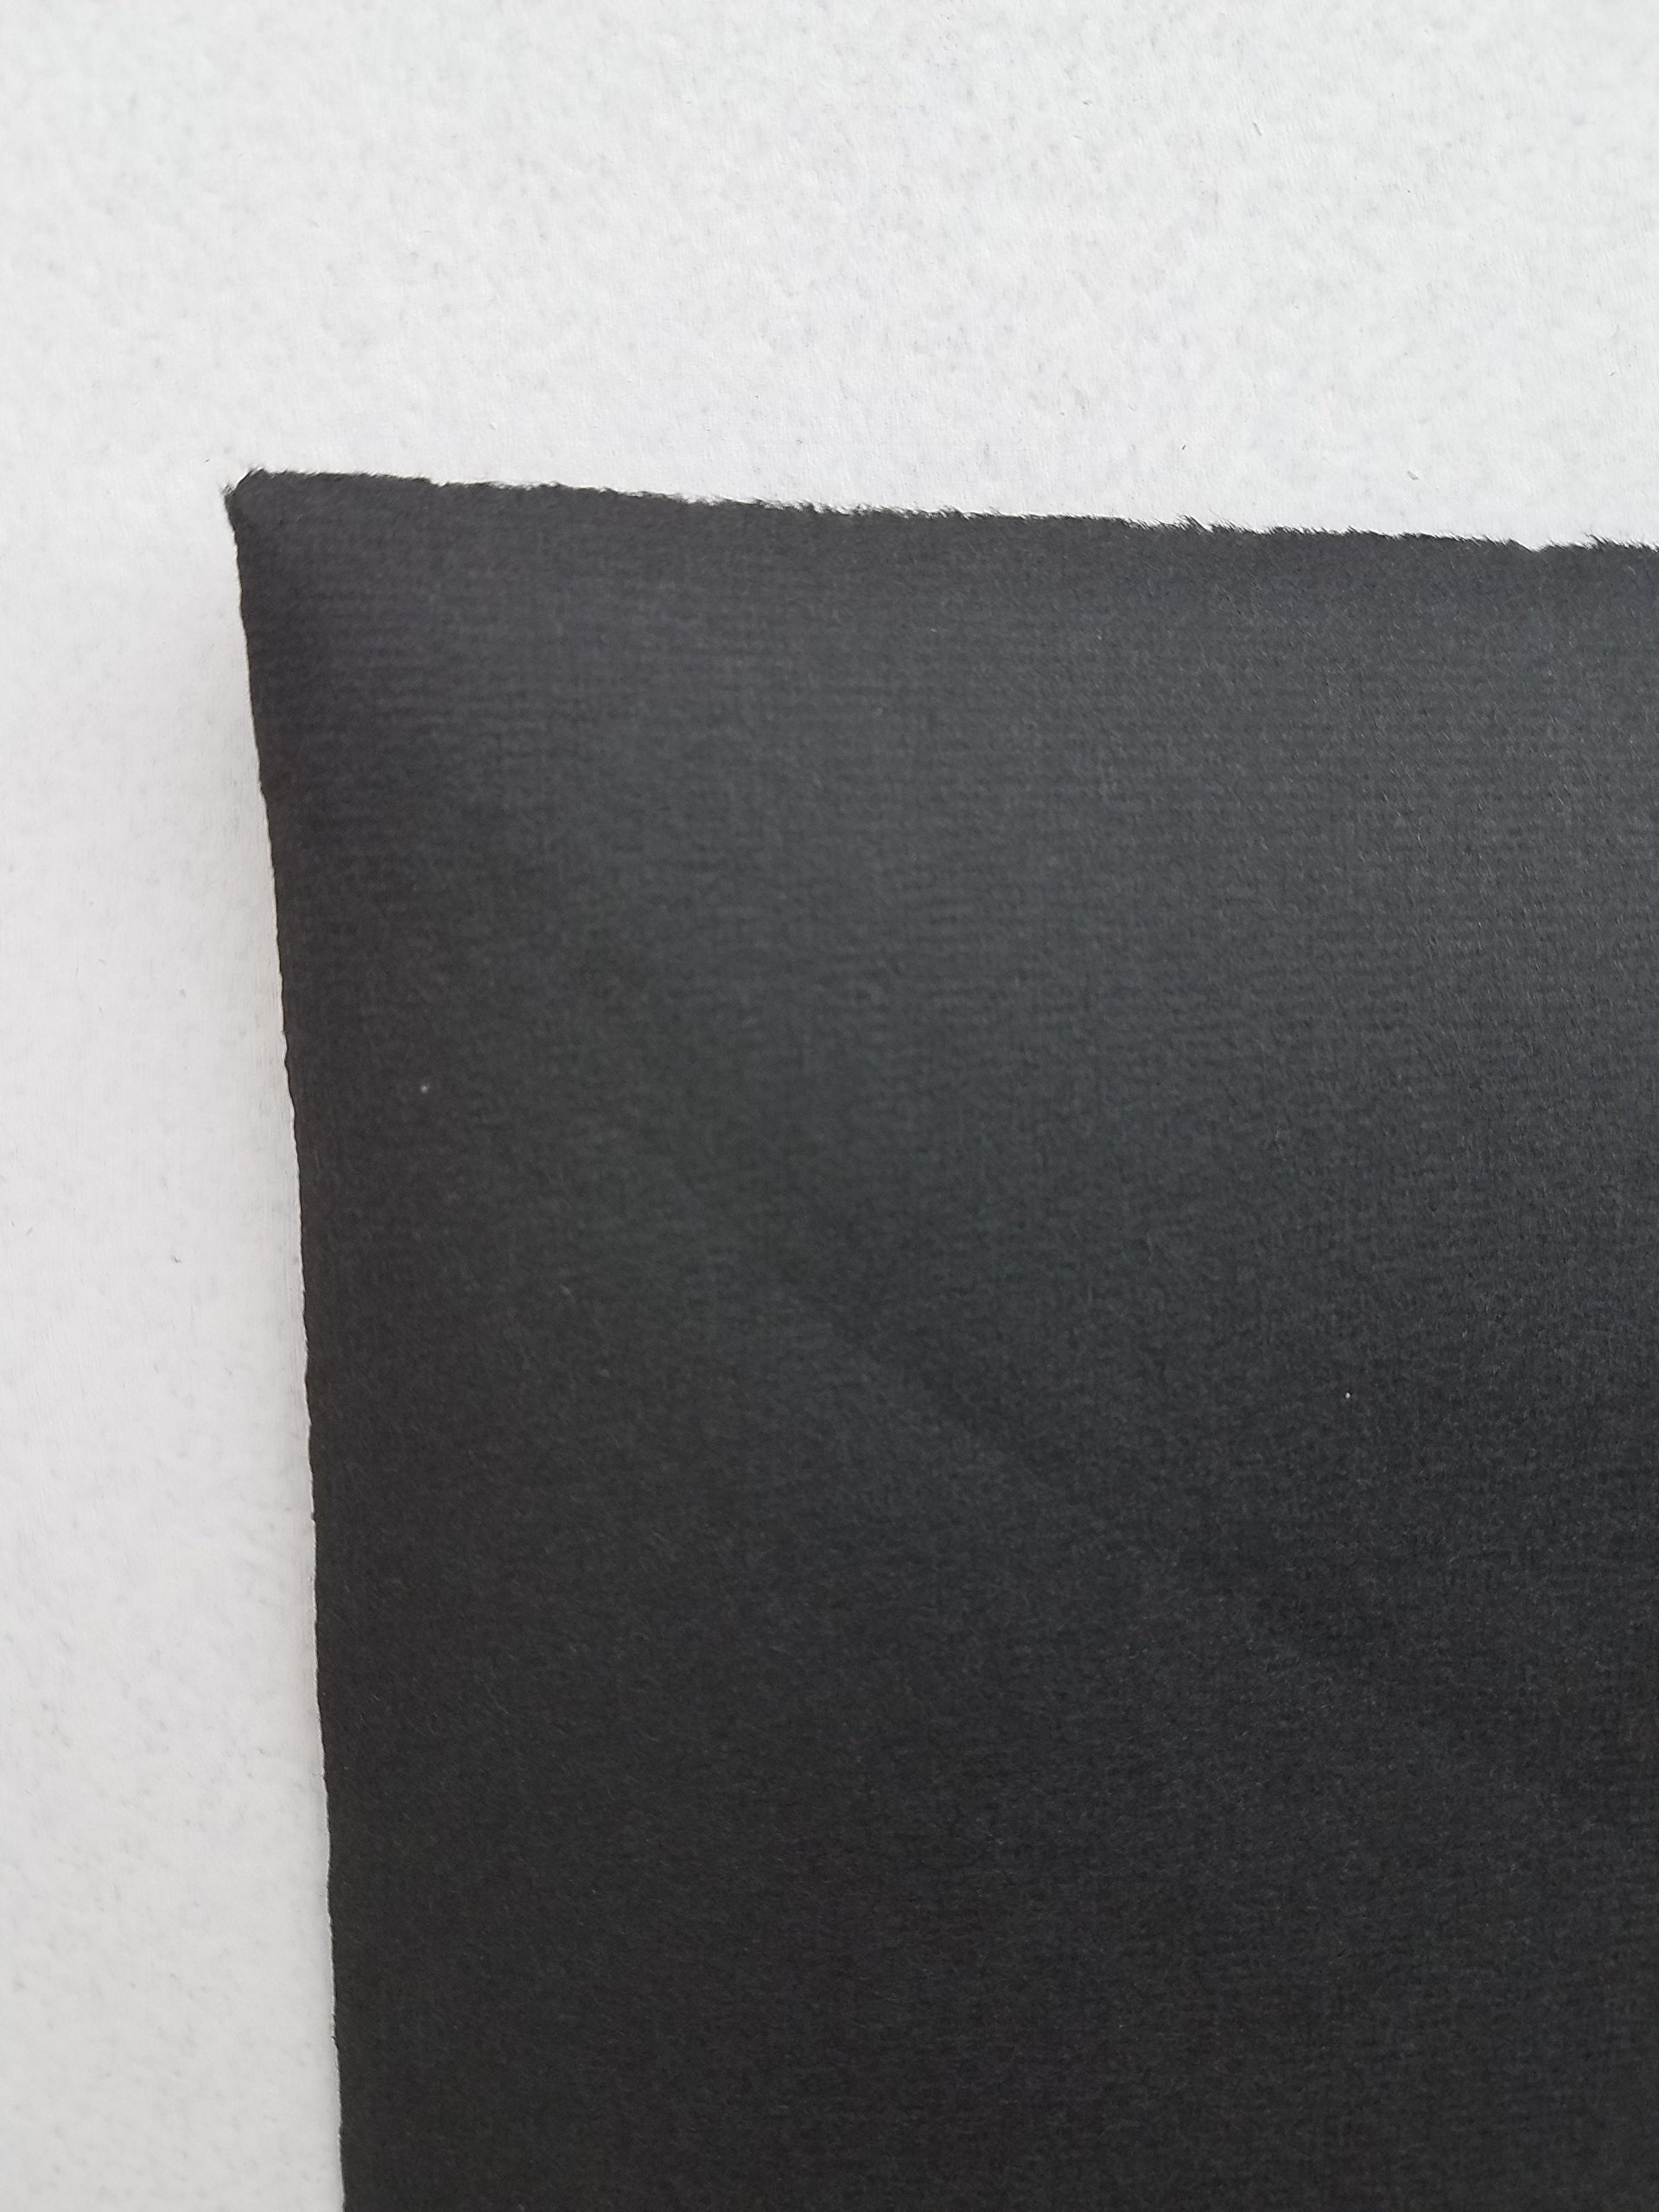 Hahnemuhle Ingres Paper, Black 114, 19'' X 25'', 100 gsm (25 Sheet Package) by Hahnemuhle Ingres Antique